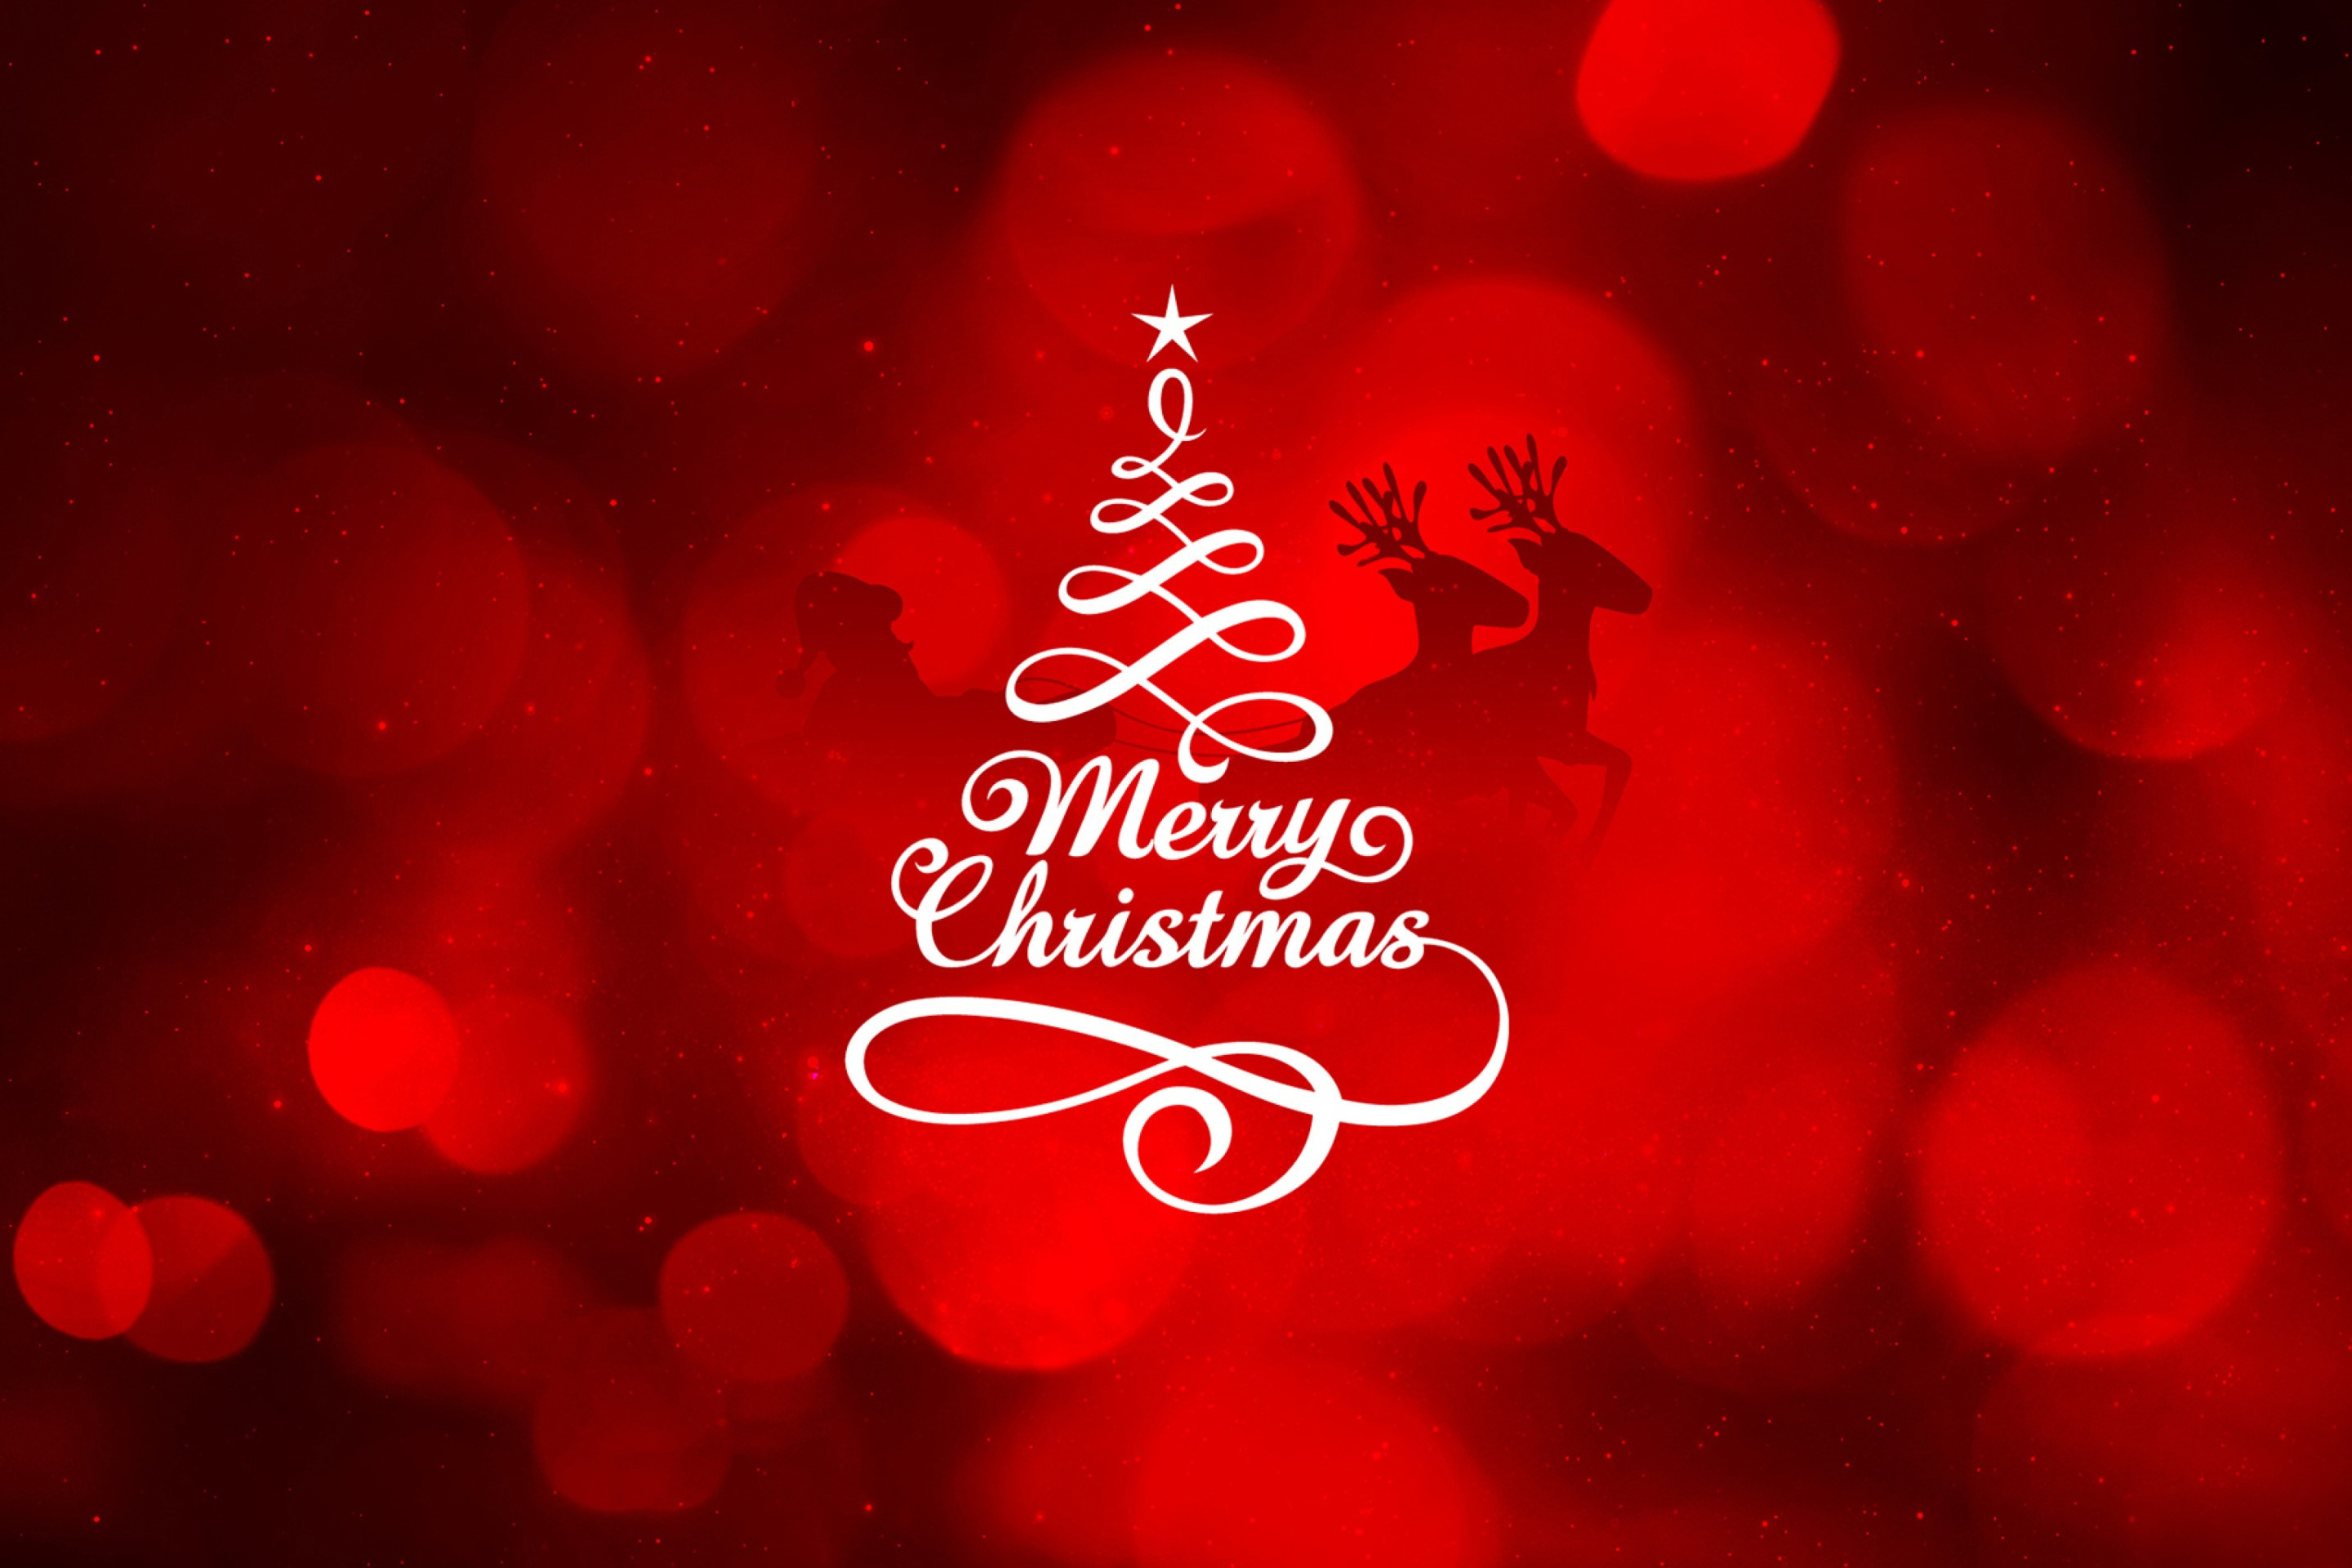 Wallpaper Merry Christmas